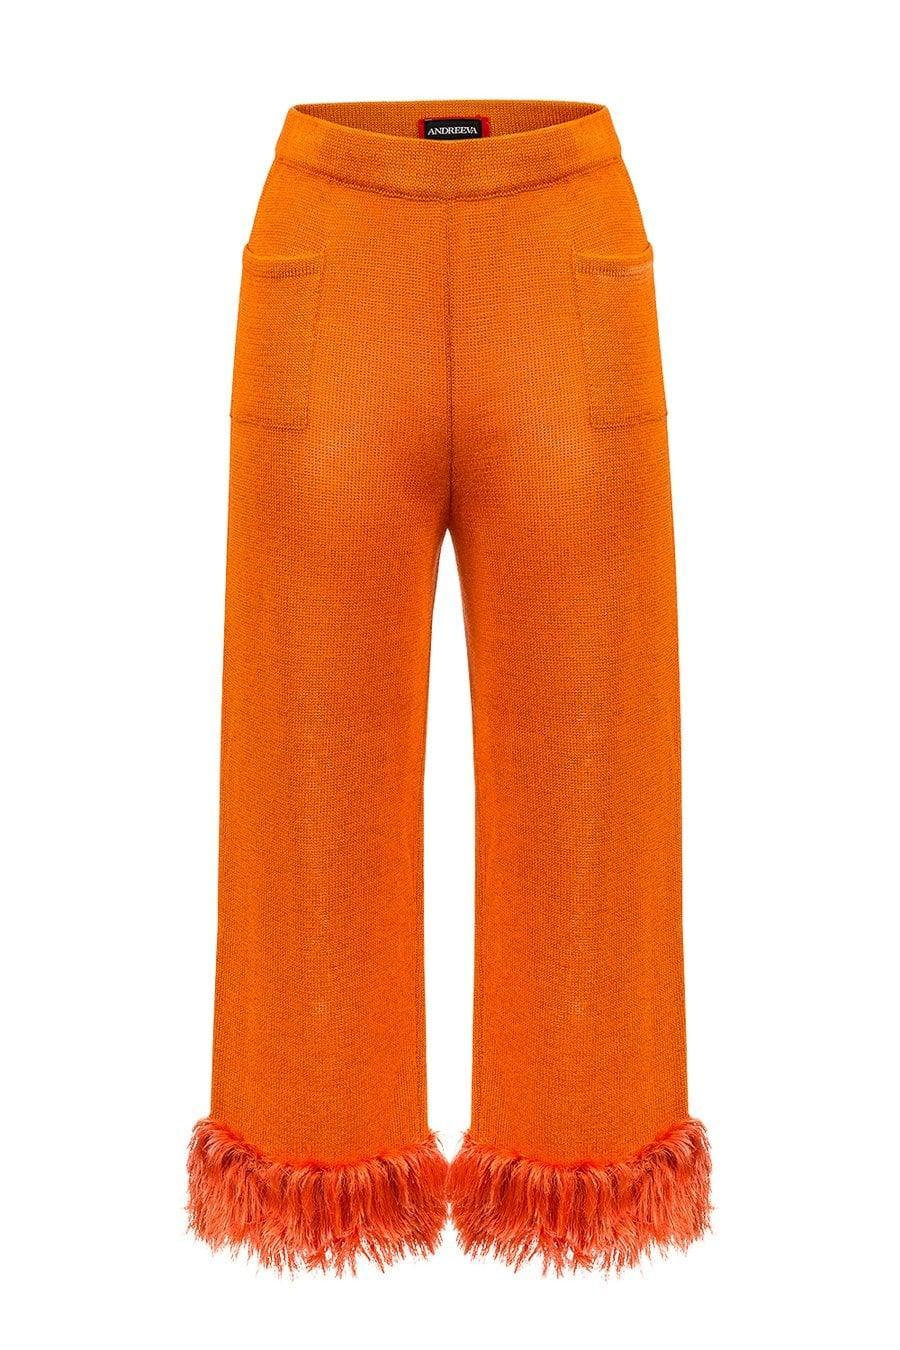 <p>Talk about sparking joy. You may never tire of wearing these <span>ANDREEVA Poppy Knit Pants</span> ($320), and that's totally okay.</p>